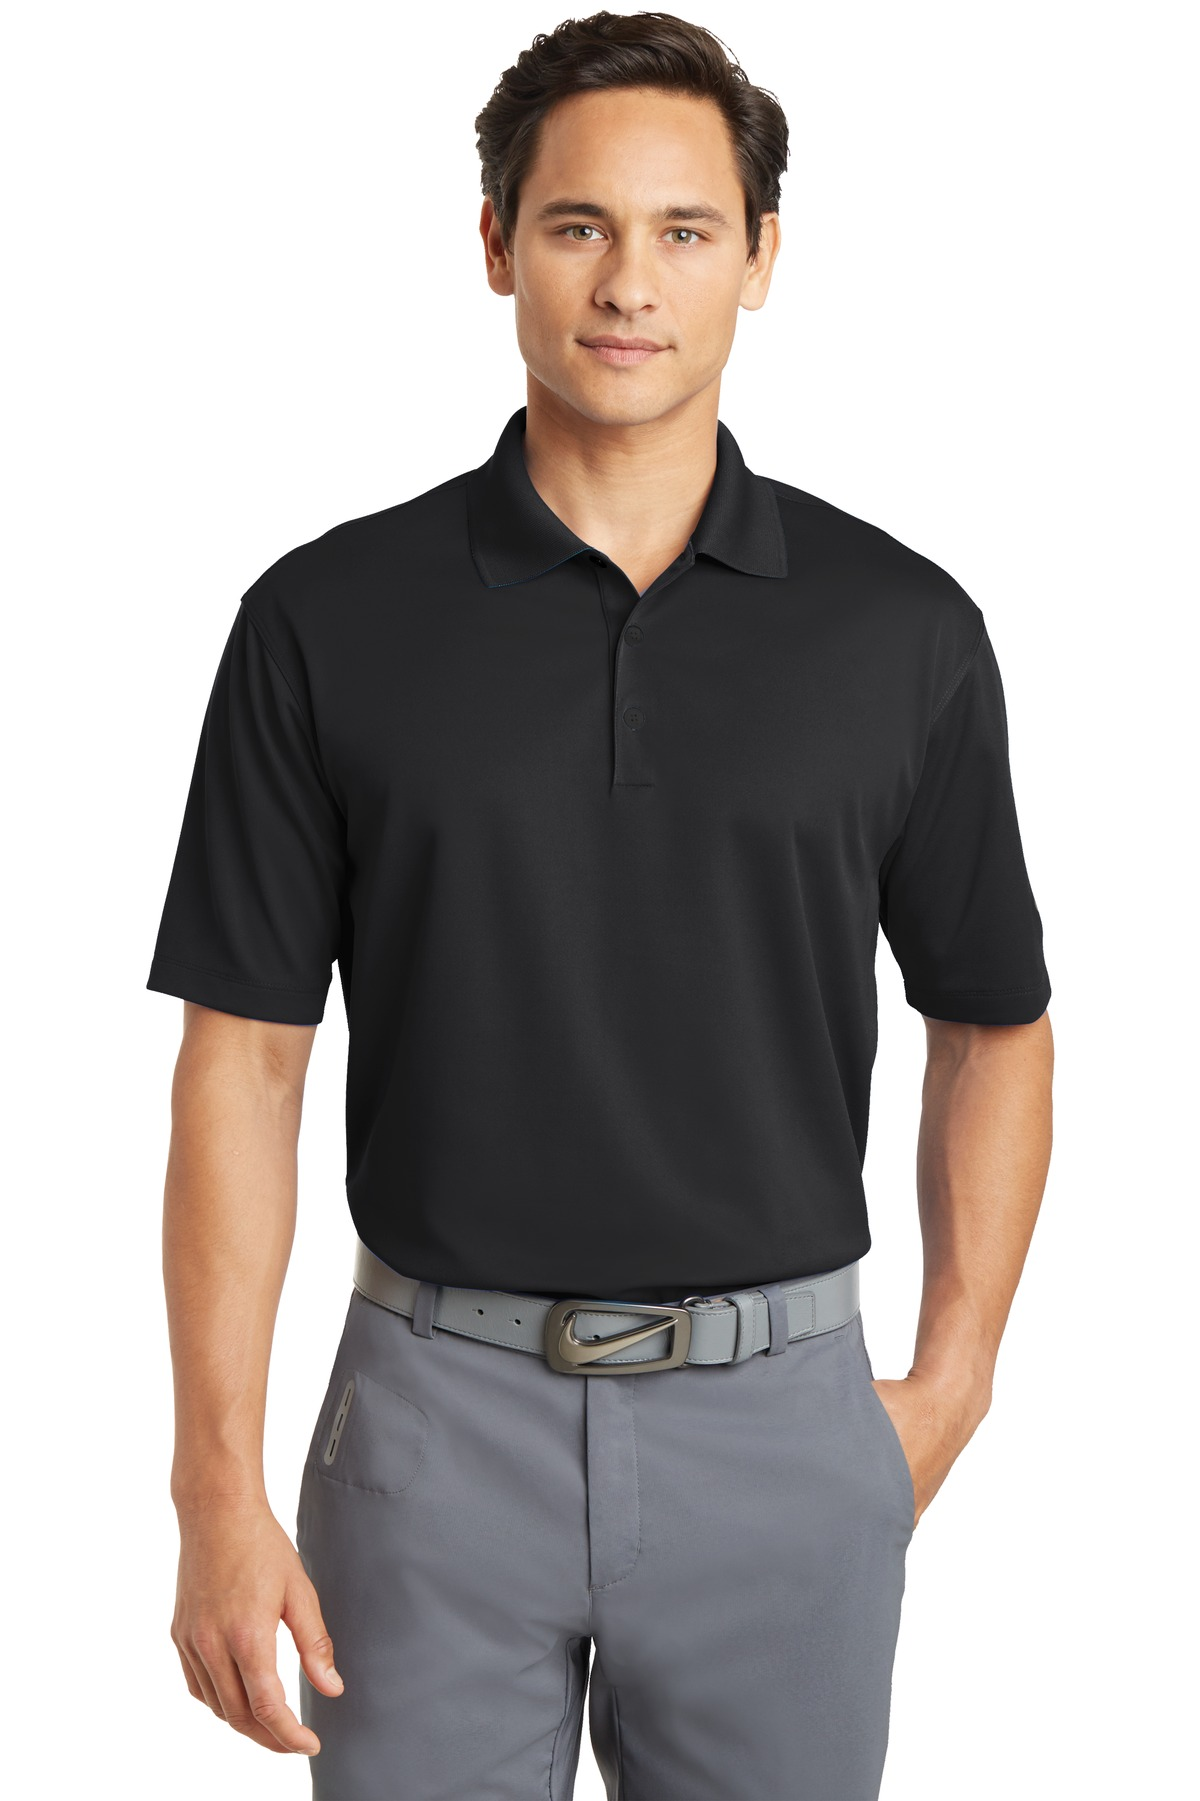 Nike Dri-FIT Micro Pique Polo. 363807 - Black